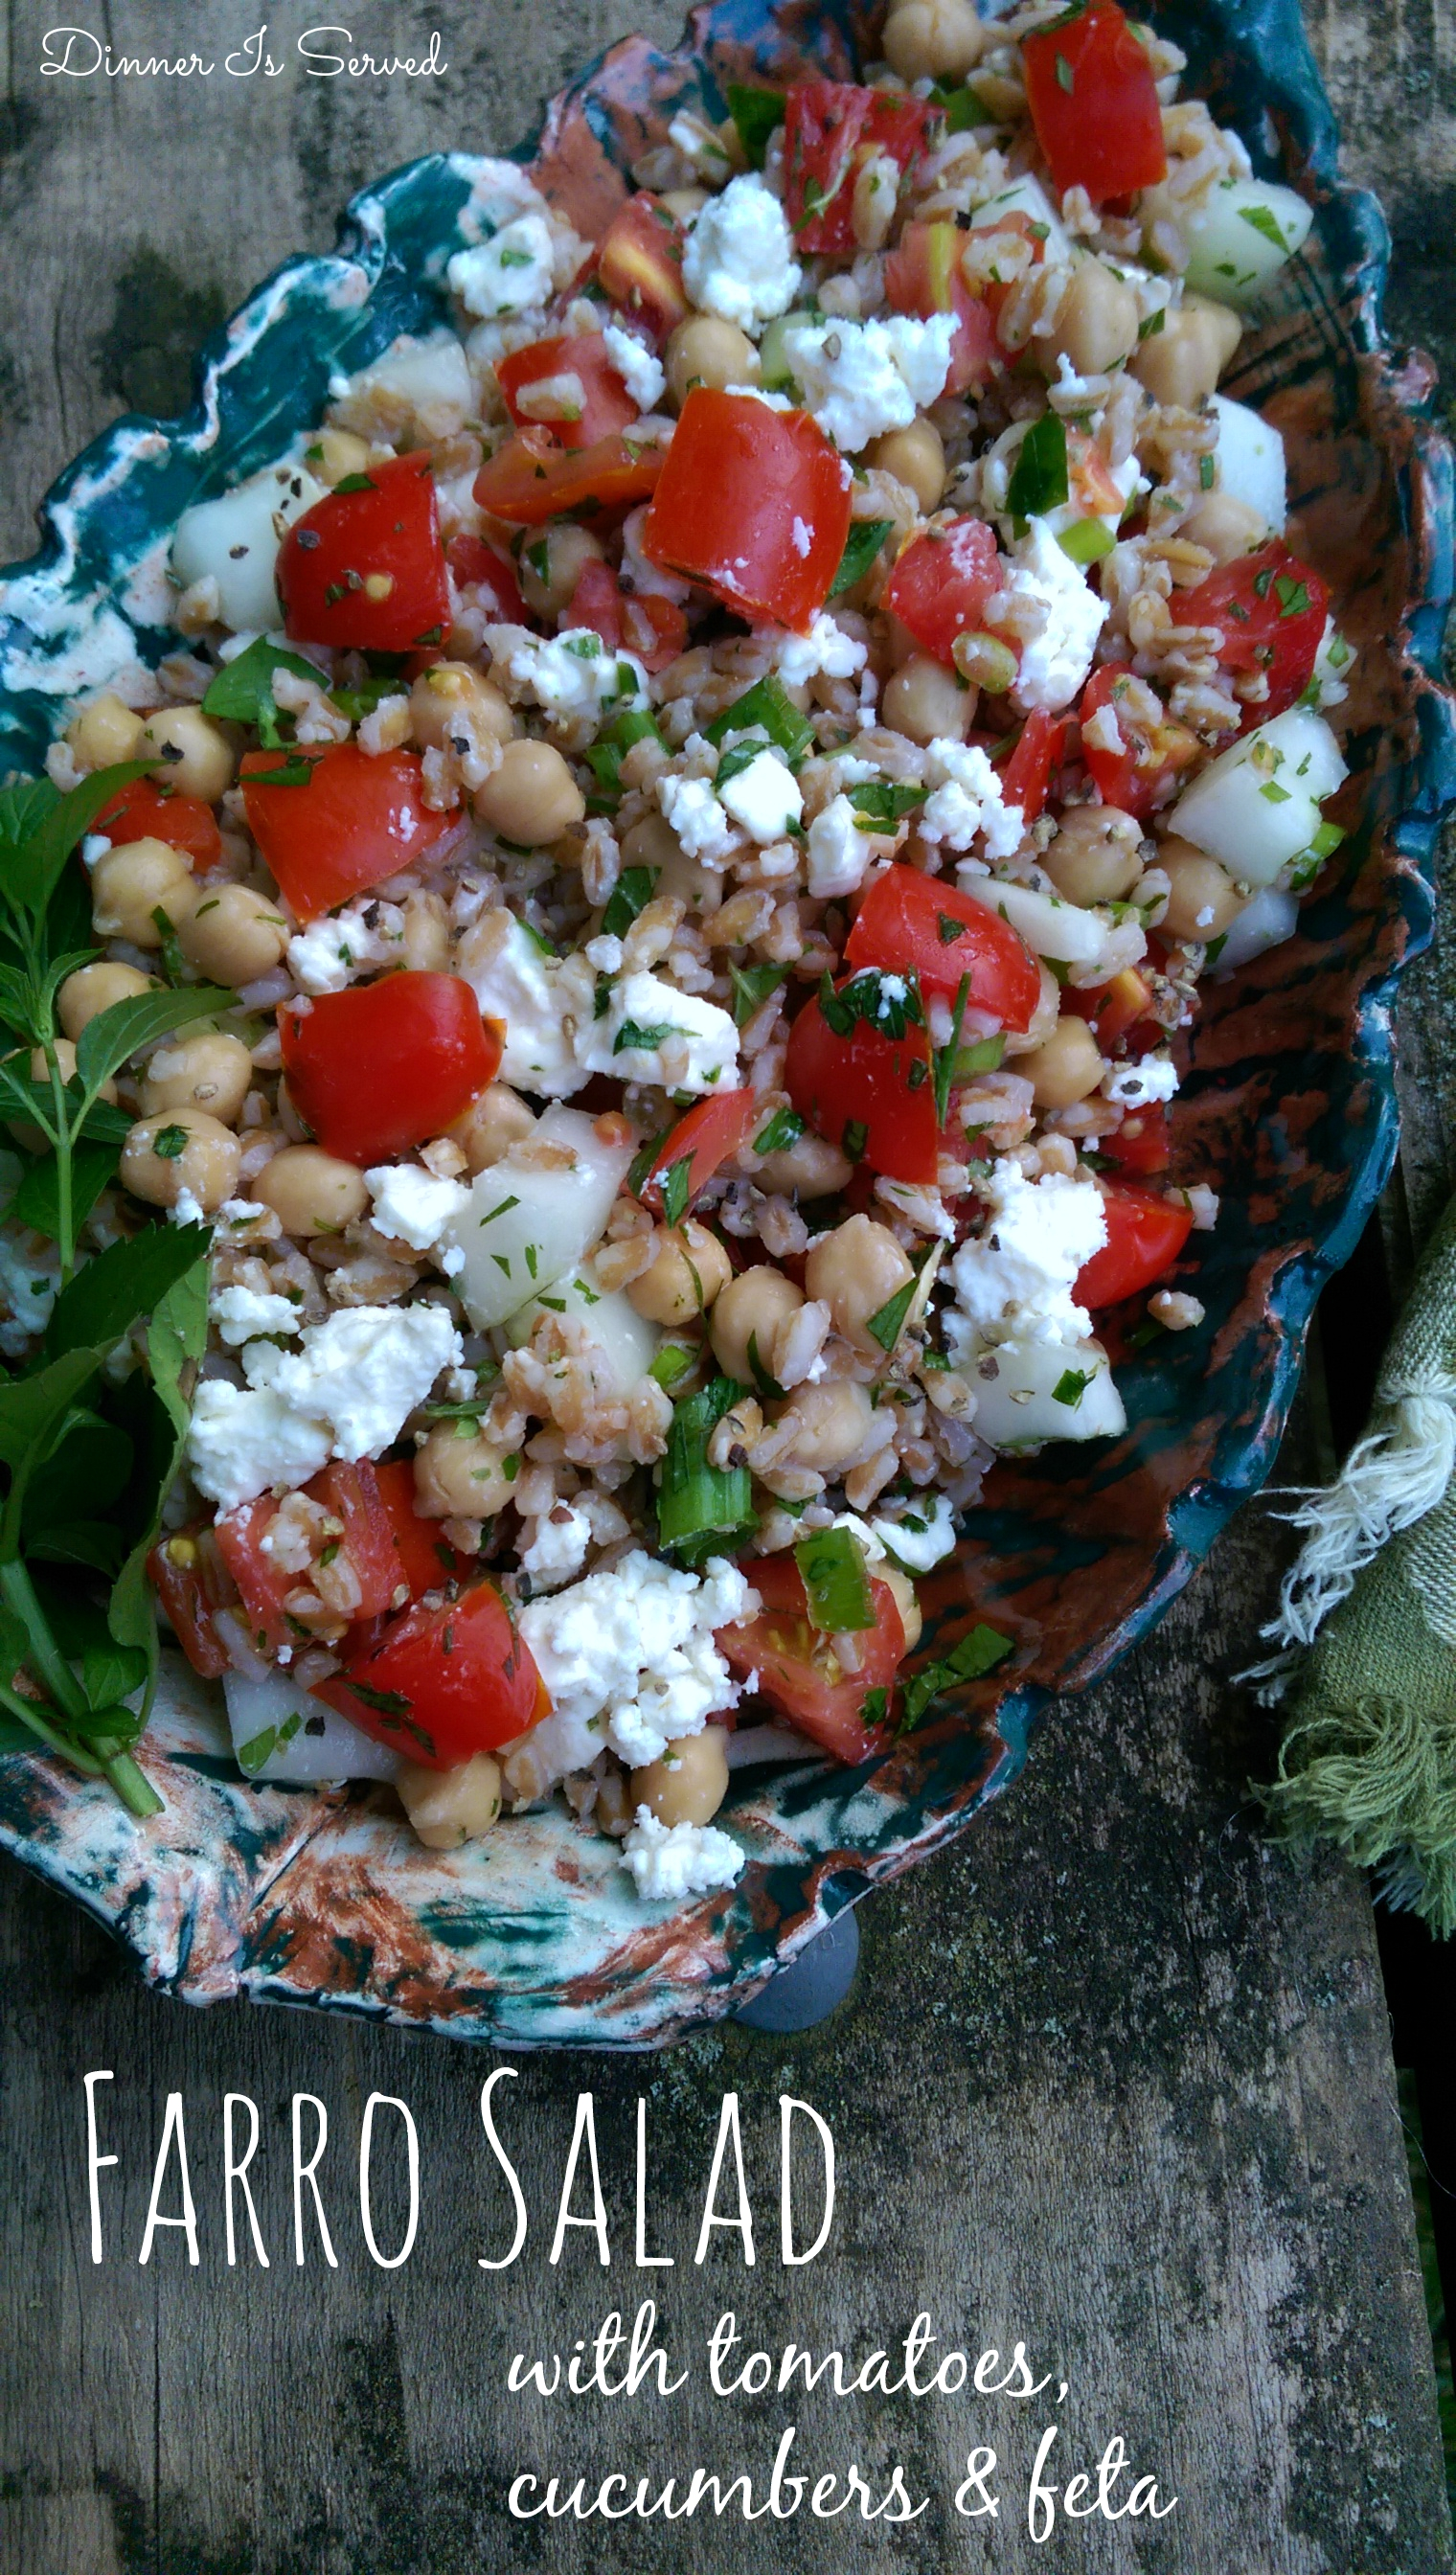 Farro Salad with Tomatoes, Cucumbers & Feta | Dinner Is Served